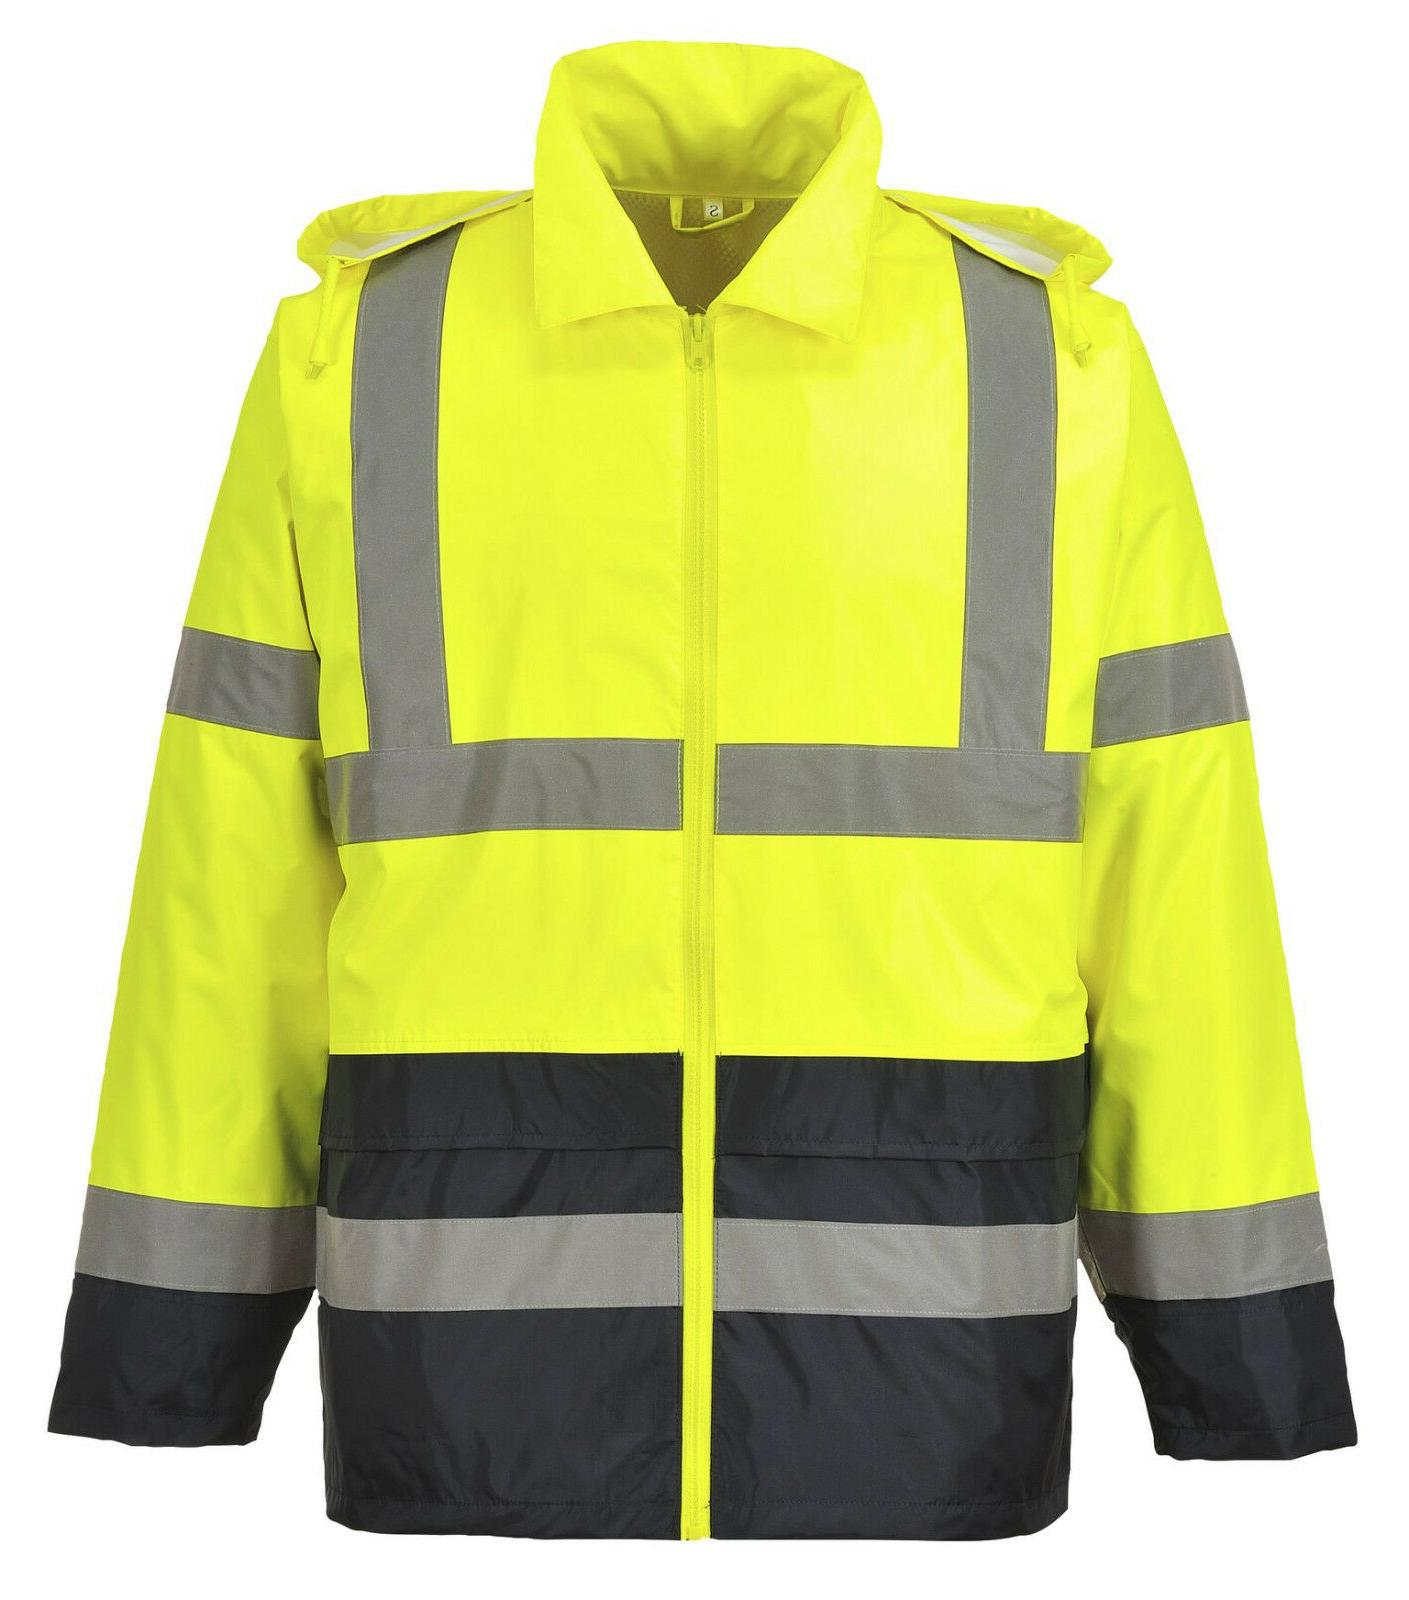 Hi Reflective Waterproof ANSI, Coat,